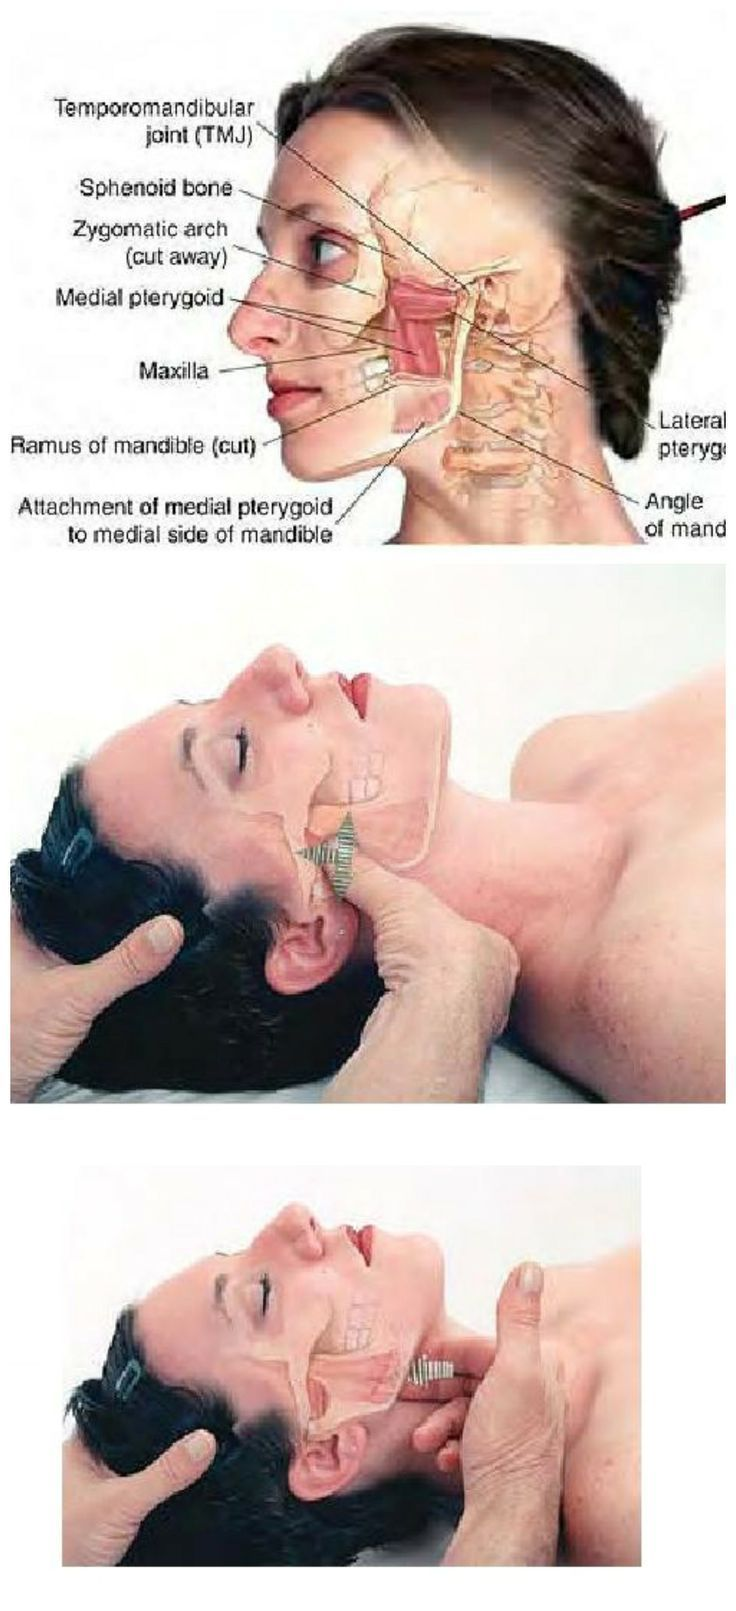 Massage Therapy ..........TMJ syndrome can be relieved through examination and treatment of the lateral and medial of the pterygoid muscles.......The Pterygoids are jaw (temporomandibular joint, or TMJ) muscles that radiate in a winglike pattern .....Kur ♥